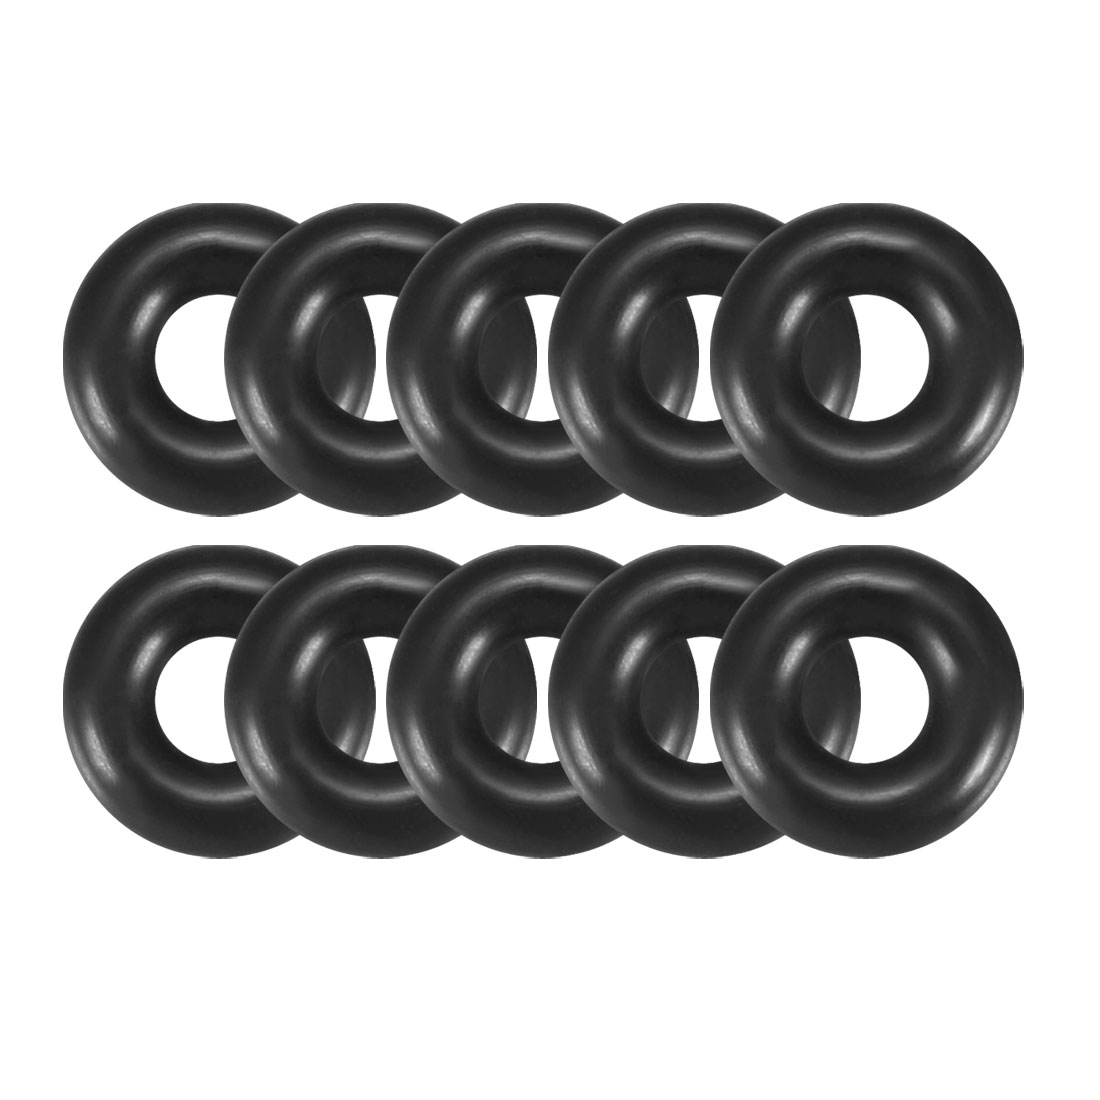 10 Pcs 10mm x 3mm Mechanical Rubber O Ring Oil Seal Gaskets